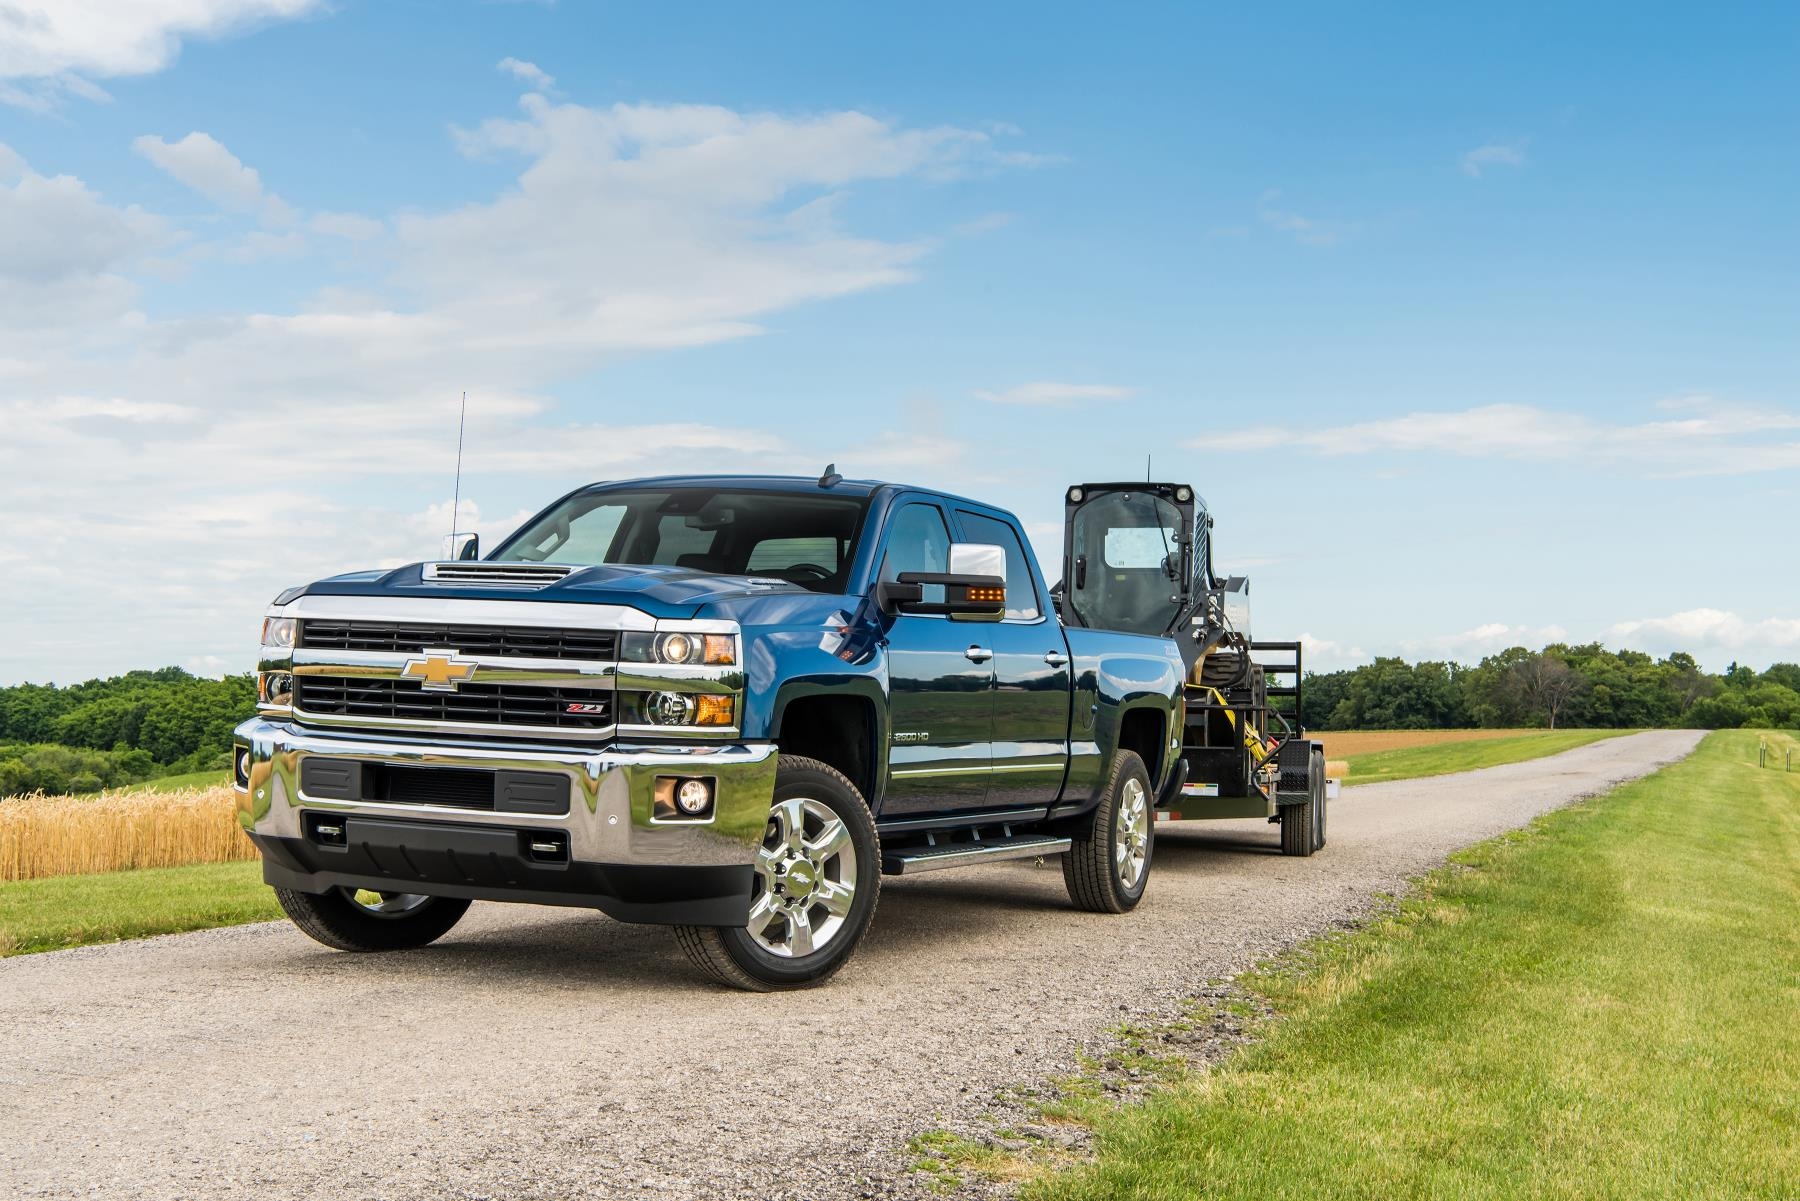 Chevrolet Silverado, one of Chevrolet's top selling vehicles in calendar year 2017